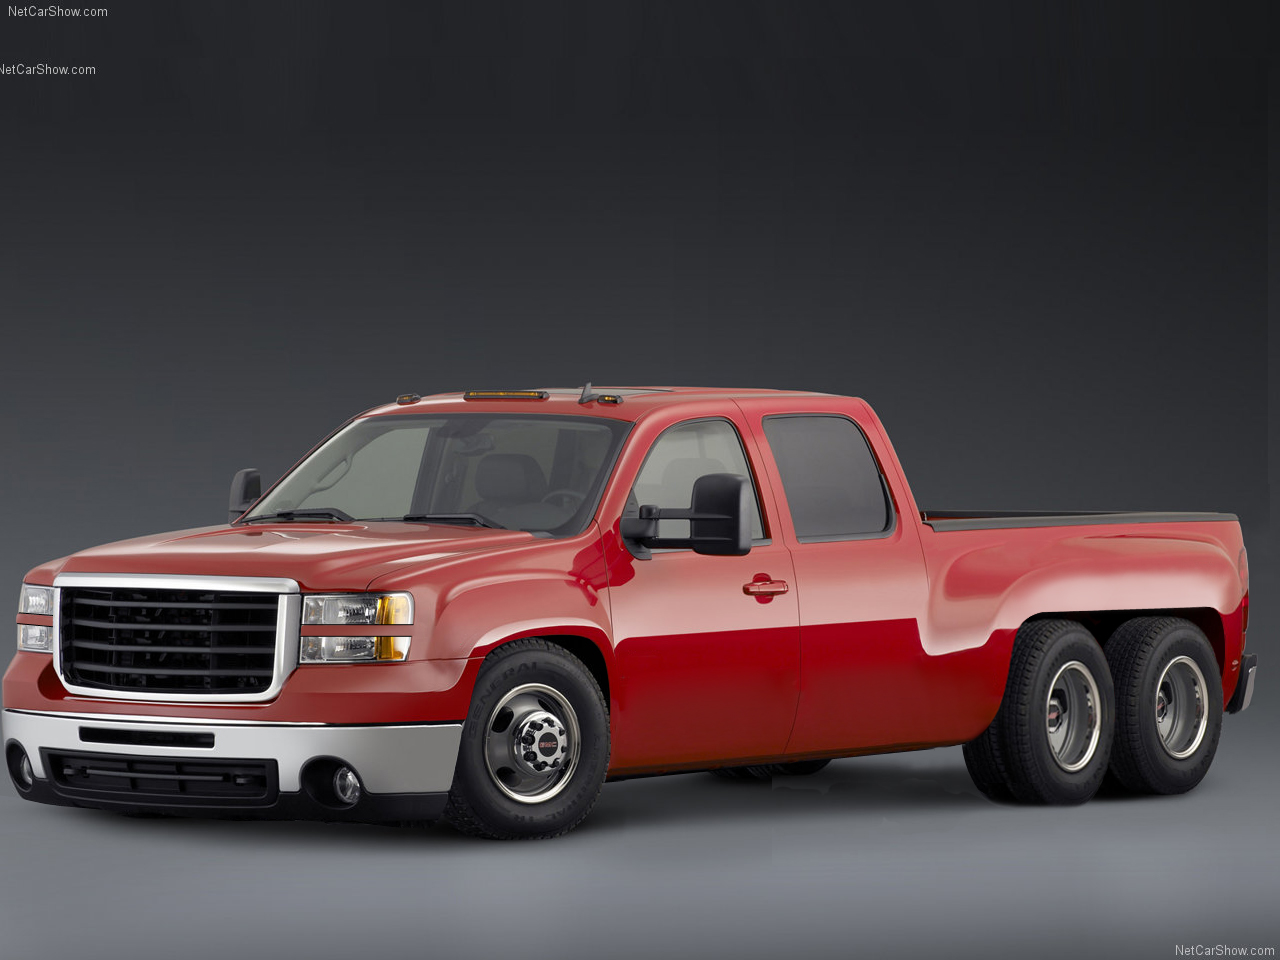 GMC Sierra 3500hd #11